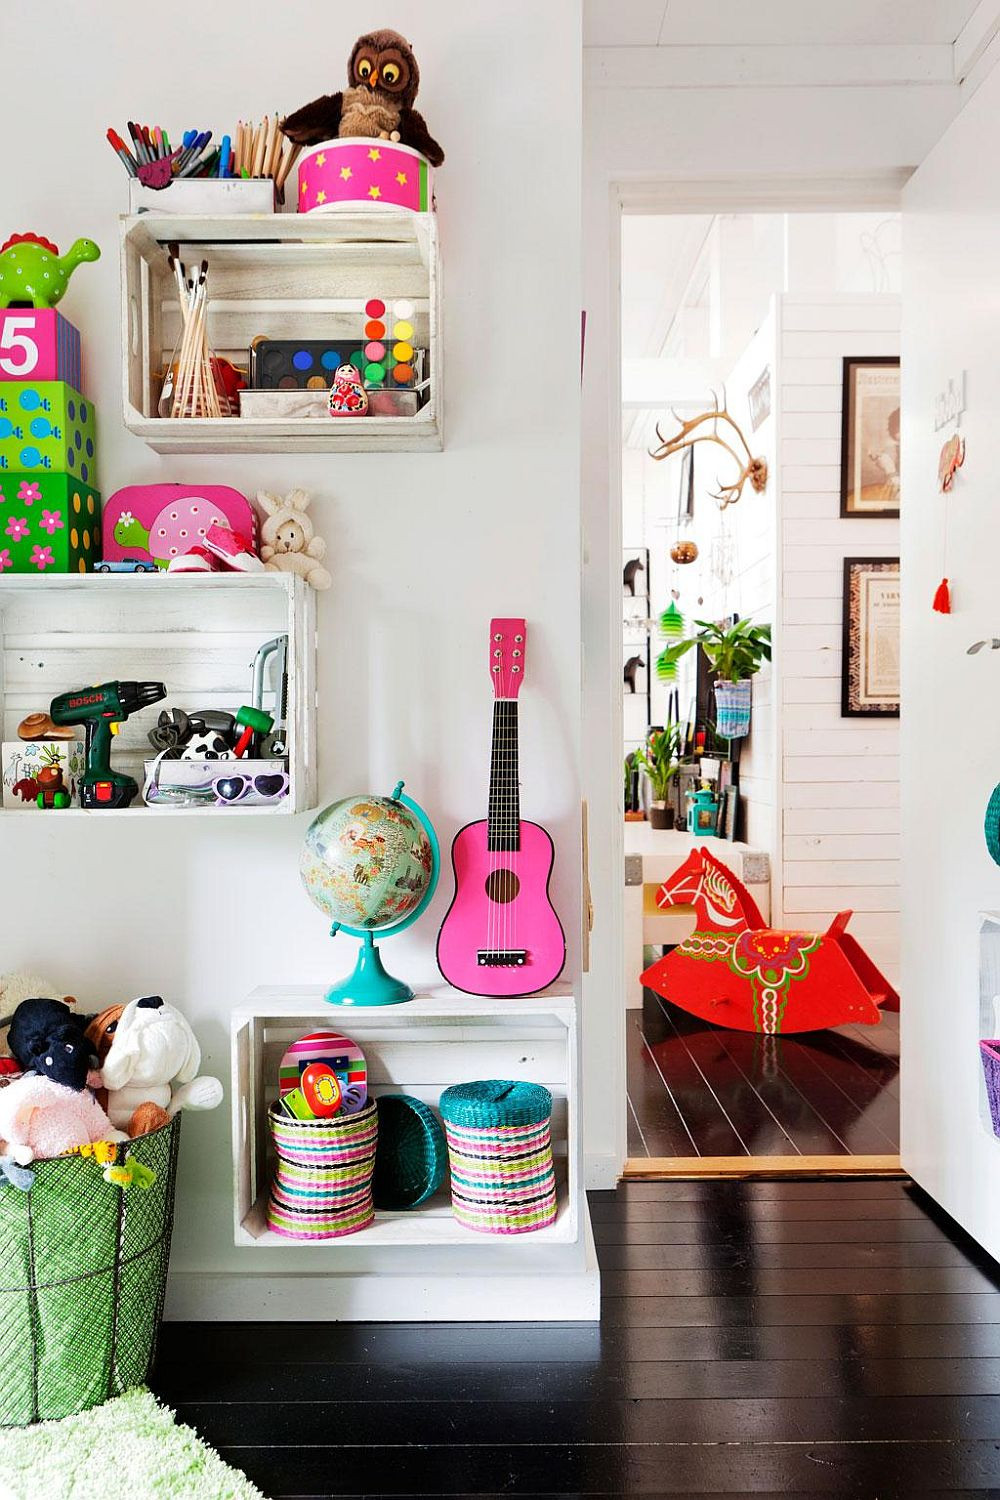 Best ideas about DIY Kids Bedrooms . Save or Pin 11 Space Saving DIY Kids' Room Storage Ideas that Help Now.